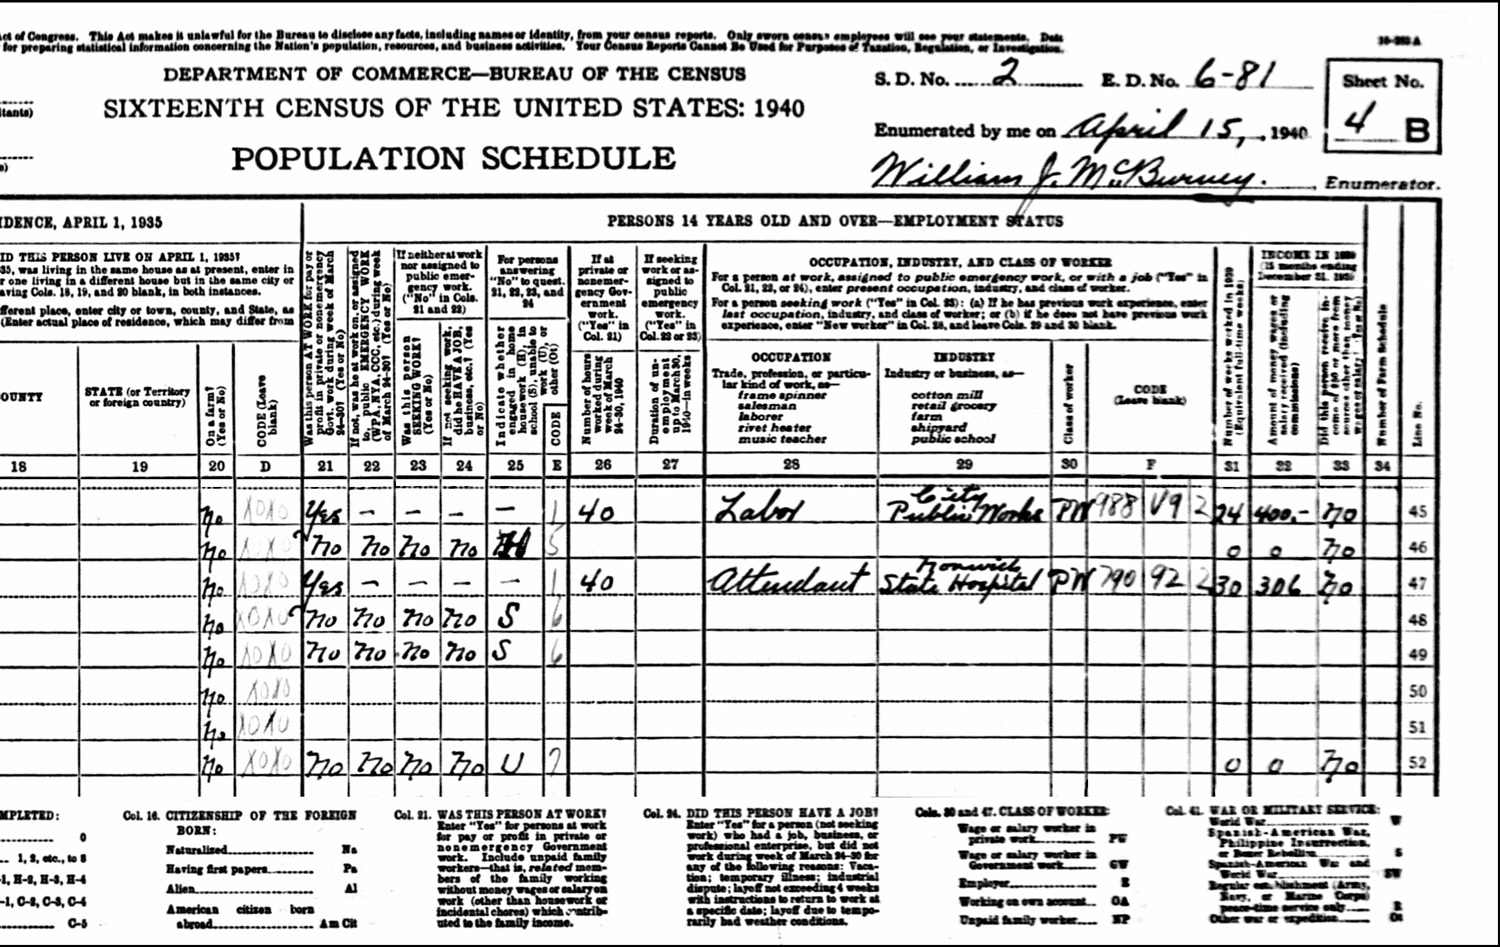 1940 US Federal Census Record for the Peter Sawicki Household (Right)